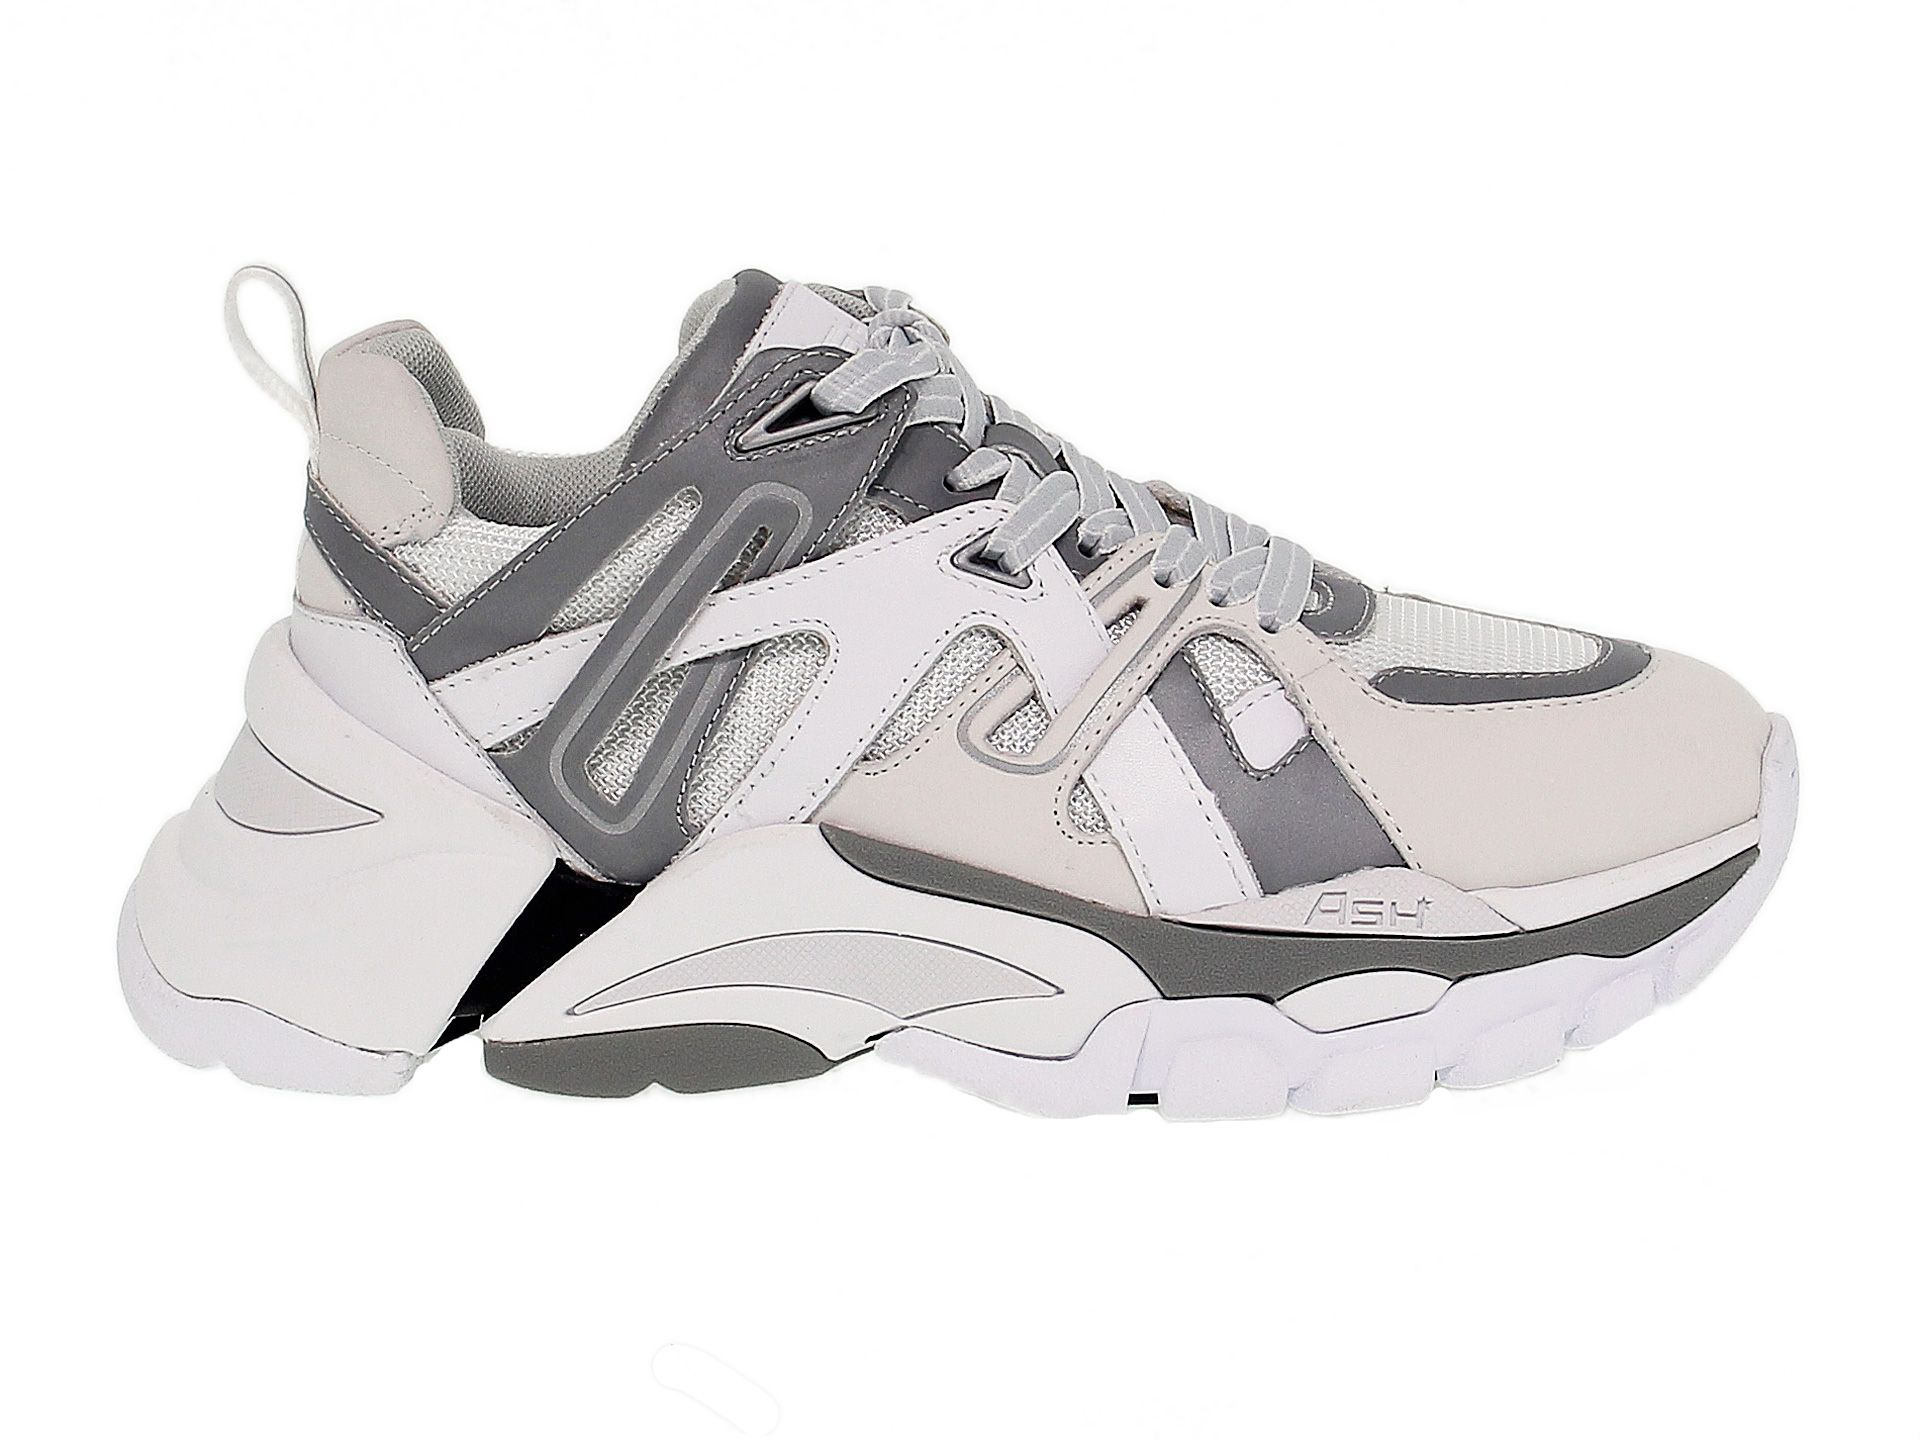 Ash Women's White Other Materials Sneakers